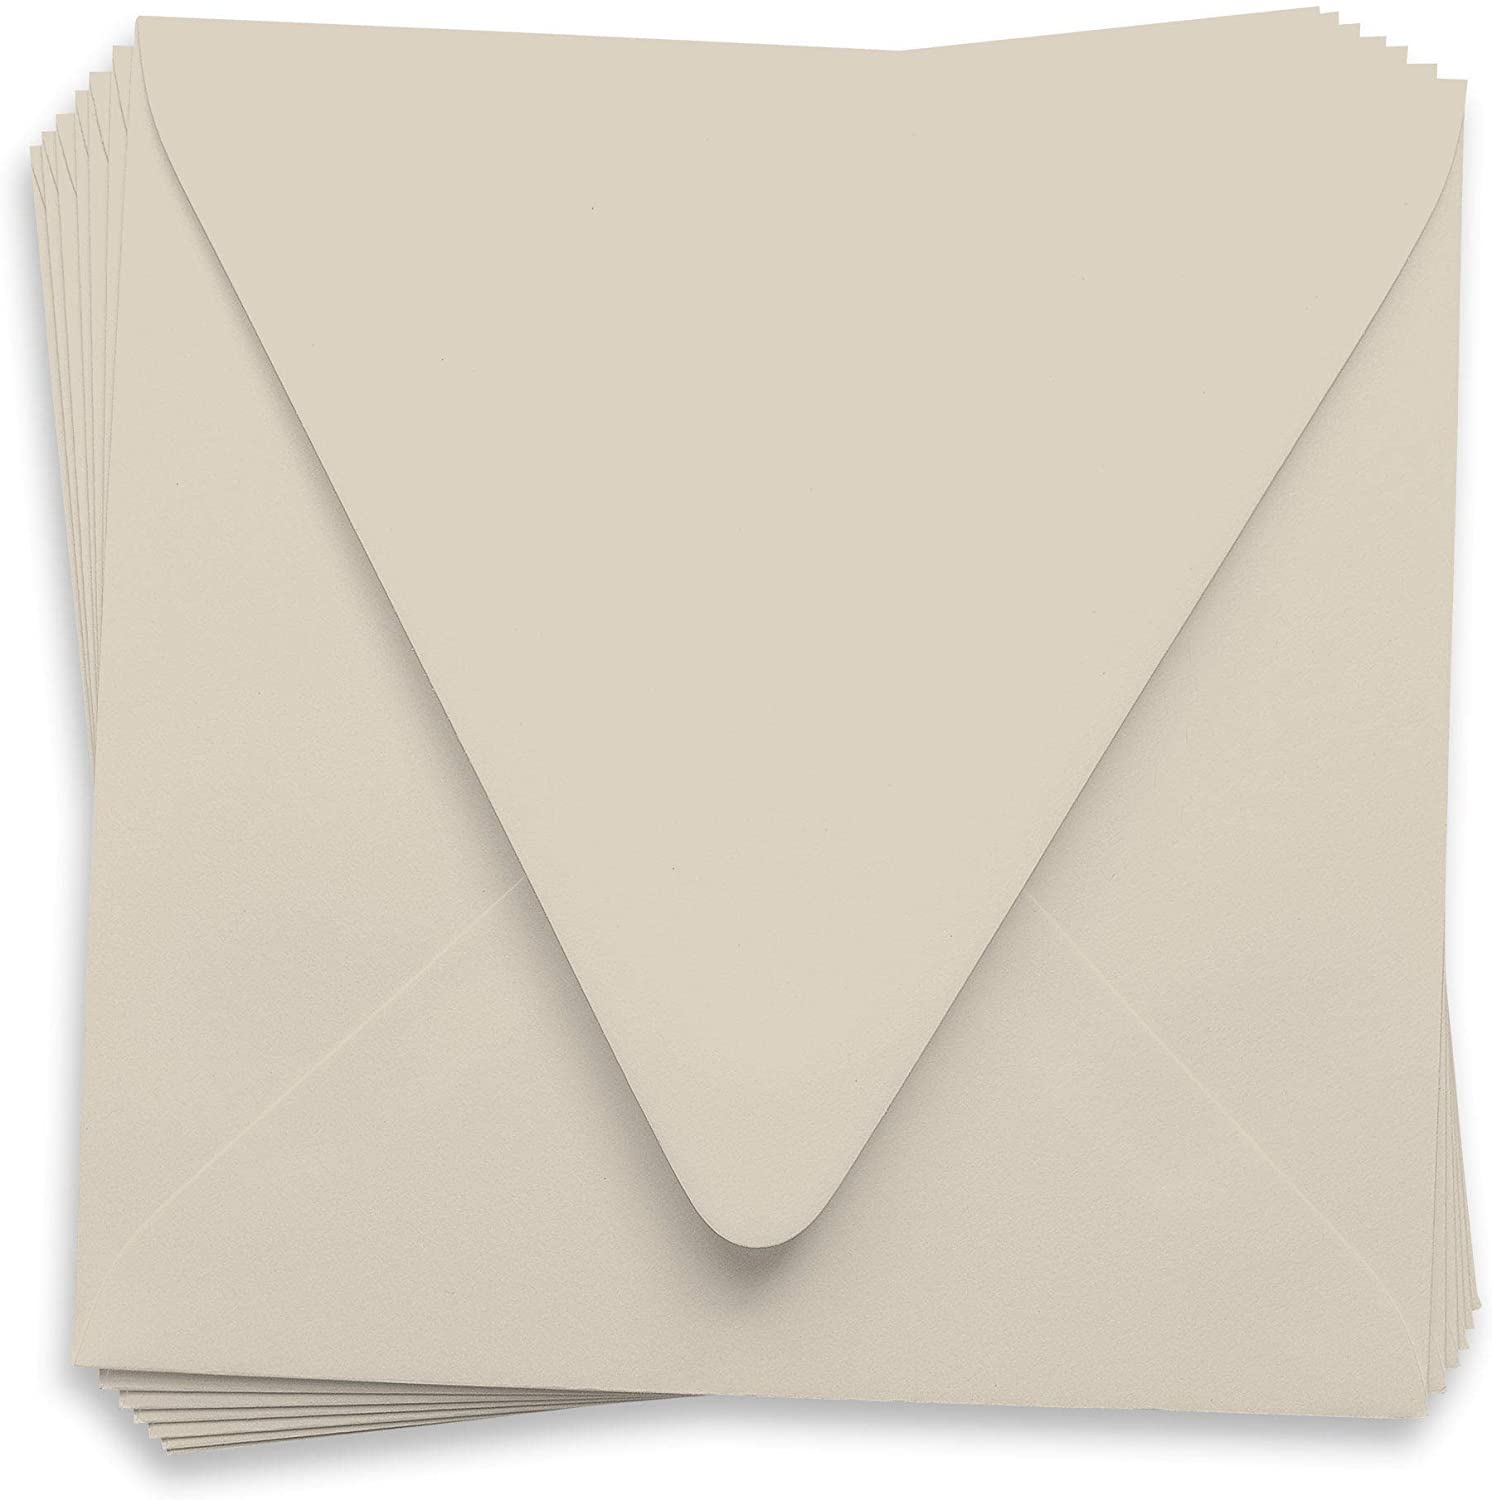 6 1/2 x 6 1/2 Gmund Colors Matt Chardonnay Envelopes - Euro Flap, 81T, 250 Pack